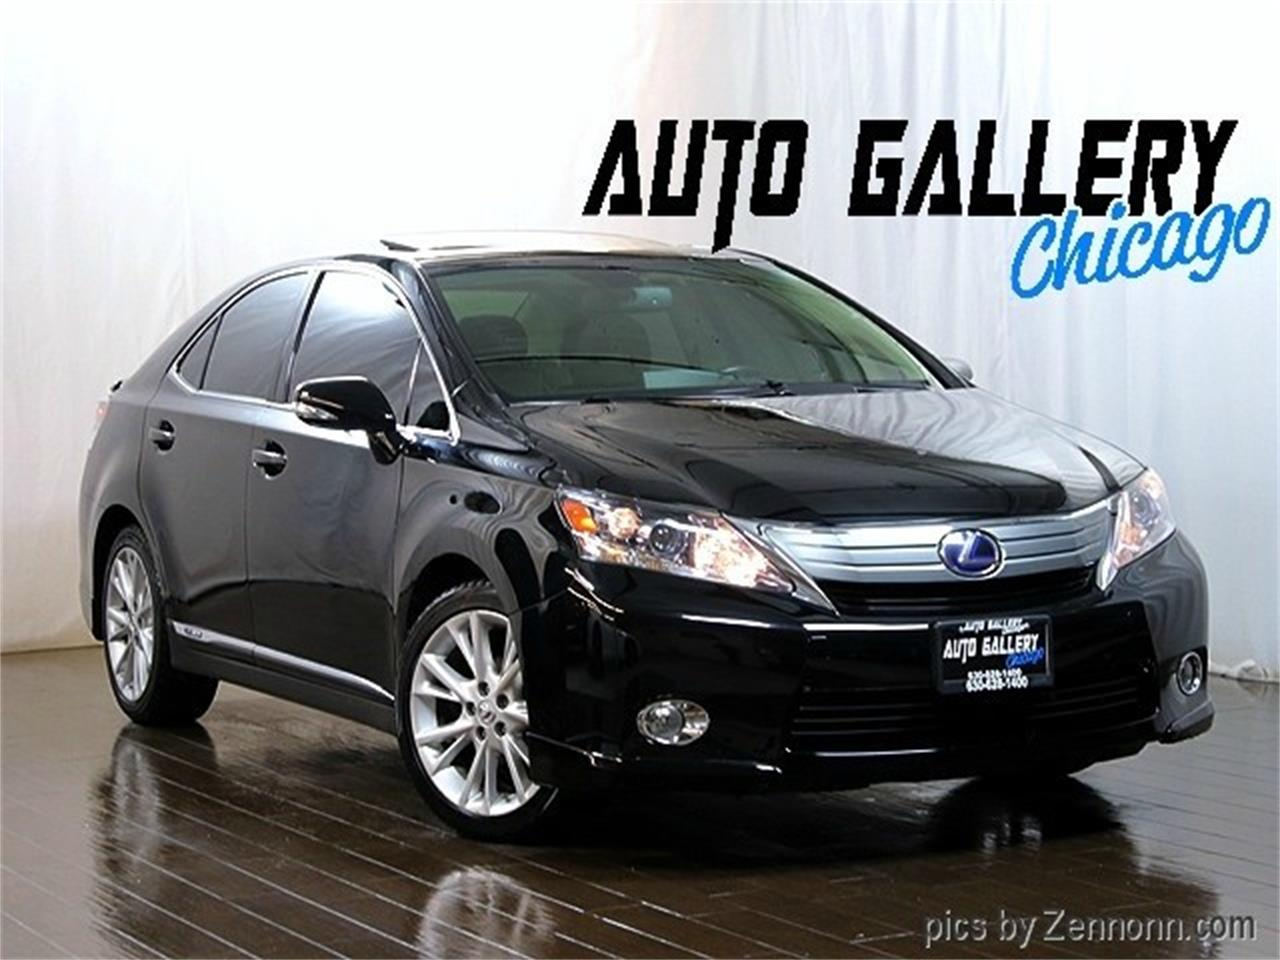 Large Picture of 2010 IS250 located in Addison Illinois - $11,990.00 Offered by Auto Gallery Chicago - MO5I